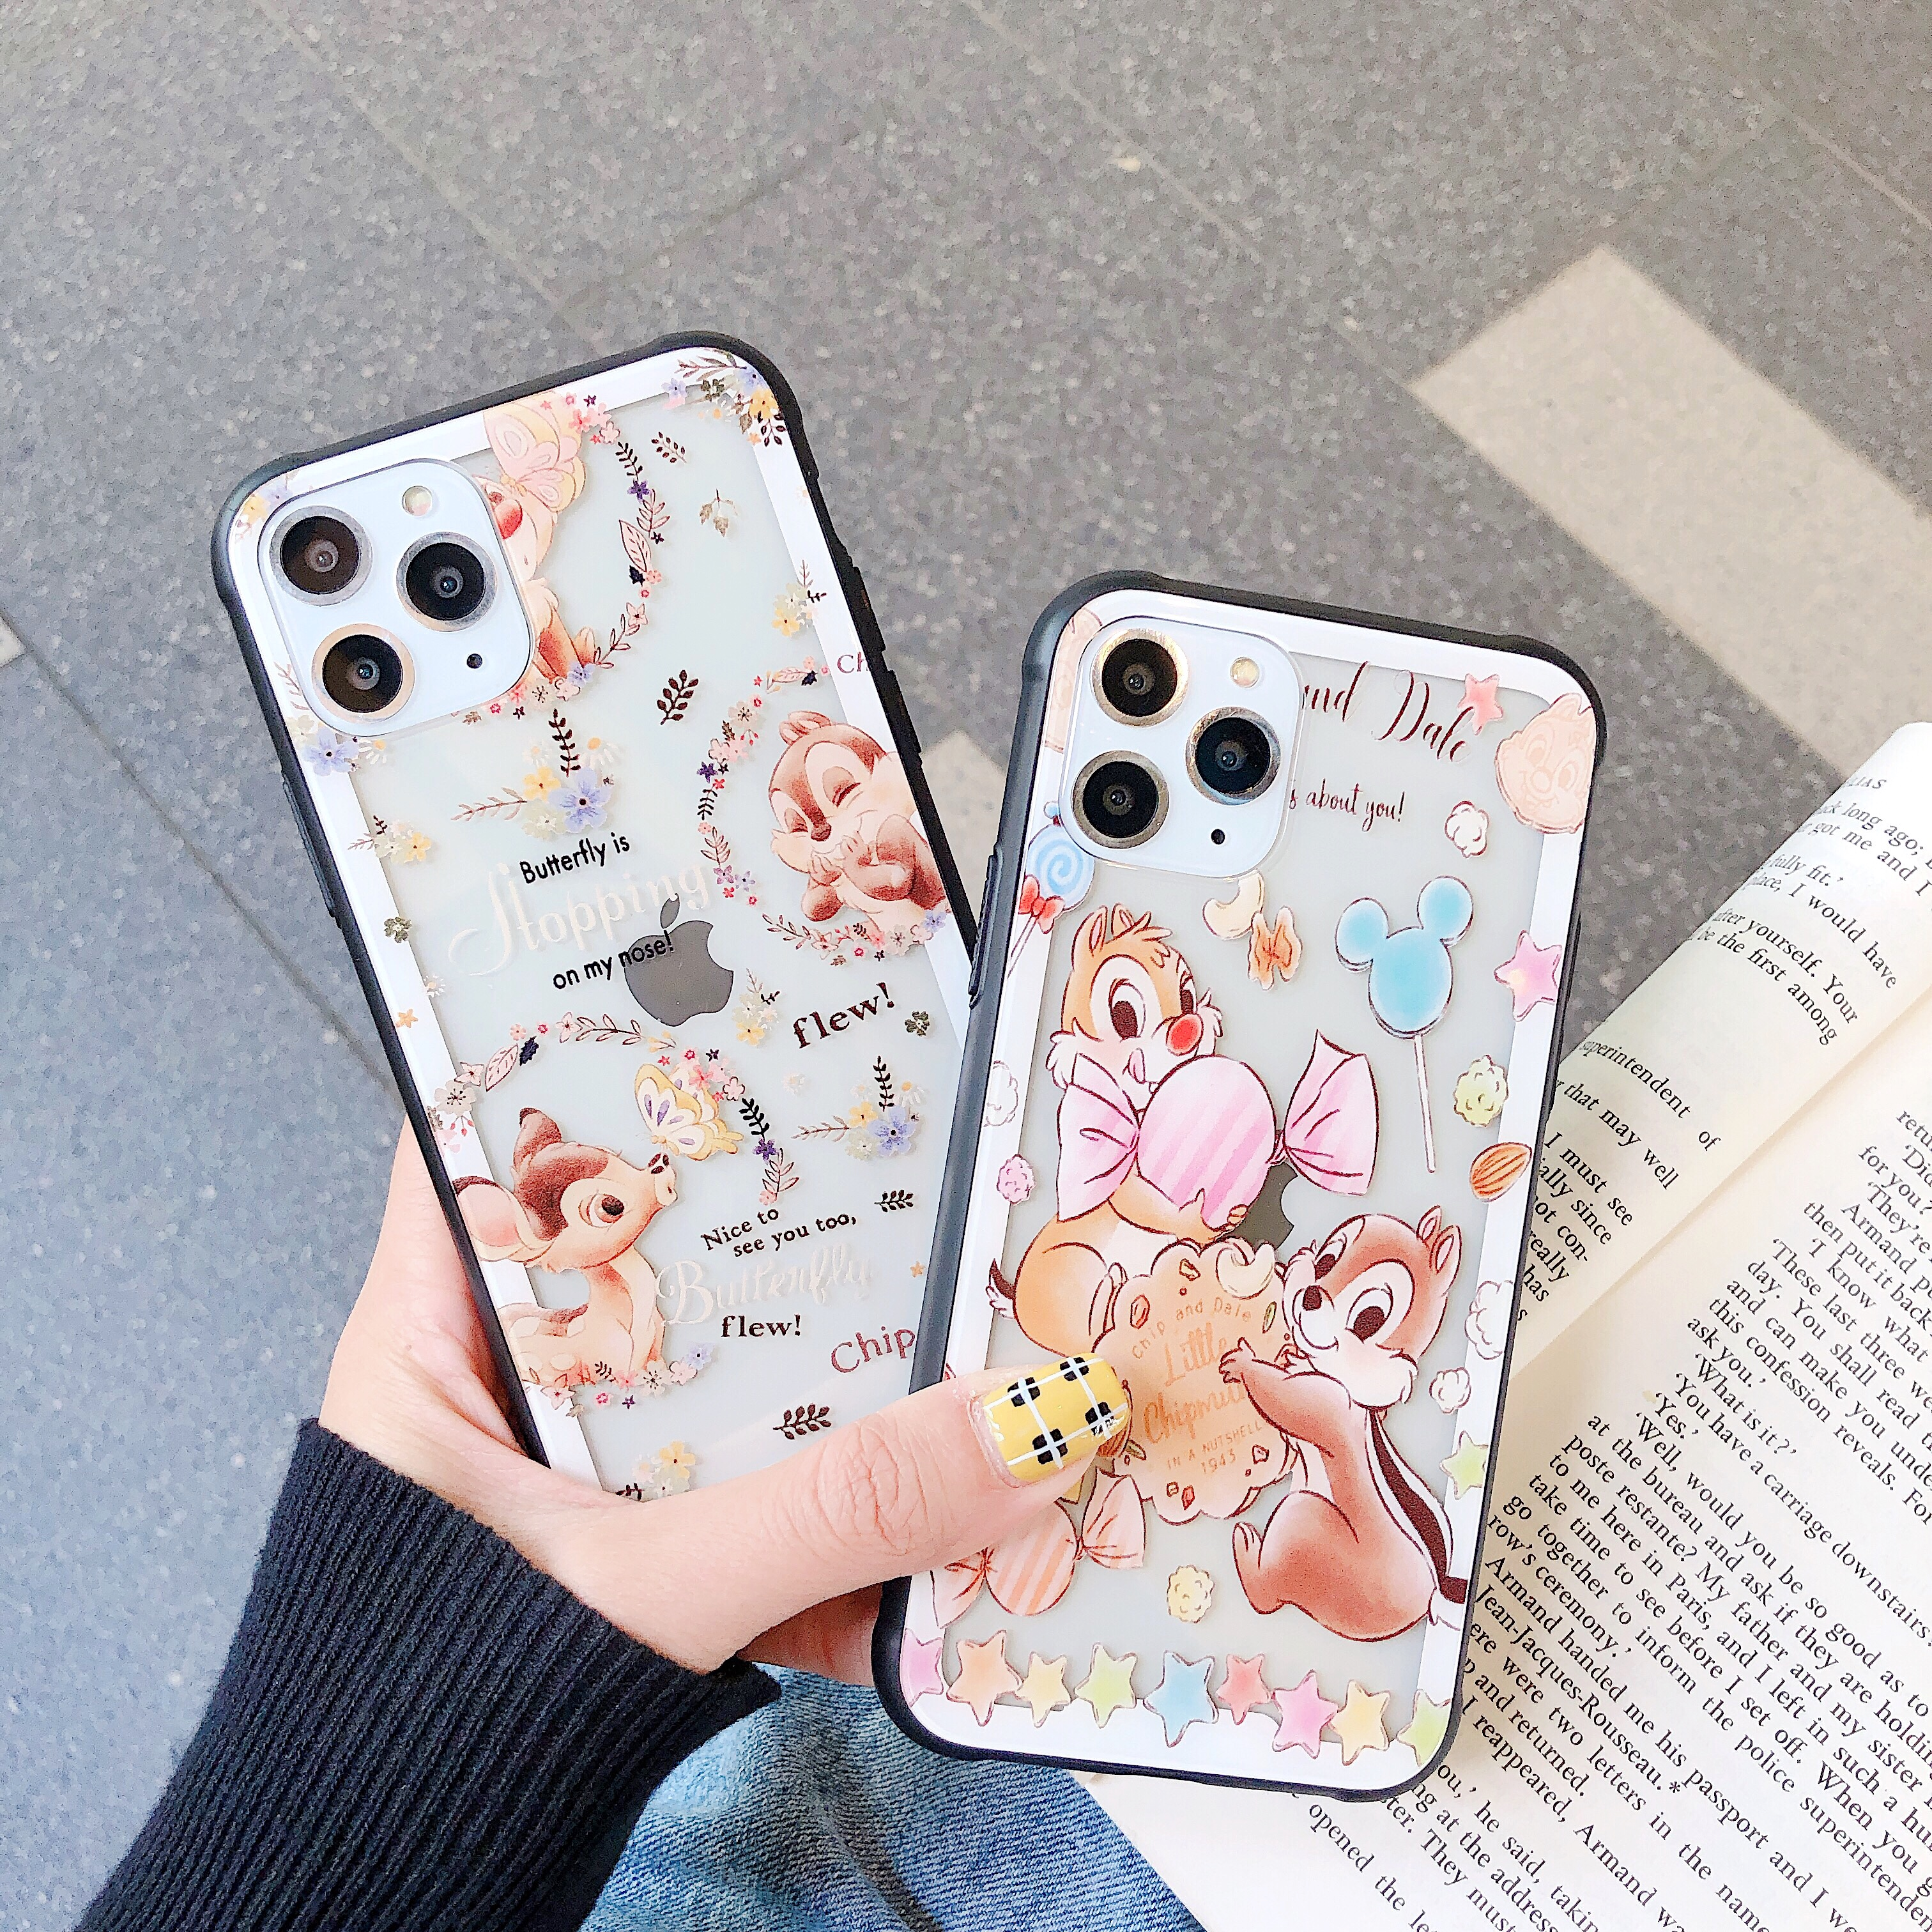 Cute Chip And Dale Squirrel Disneys Cartoon Phone Case For Iphone 7 8 Plus X Xs Xr Xsmax 11 11pro Max Glass Phone Half Wrapped Cases Aliexpress